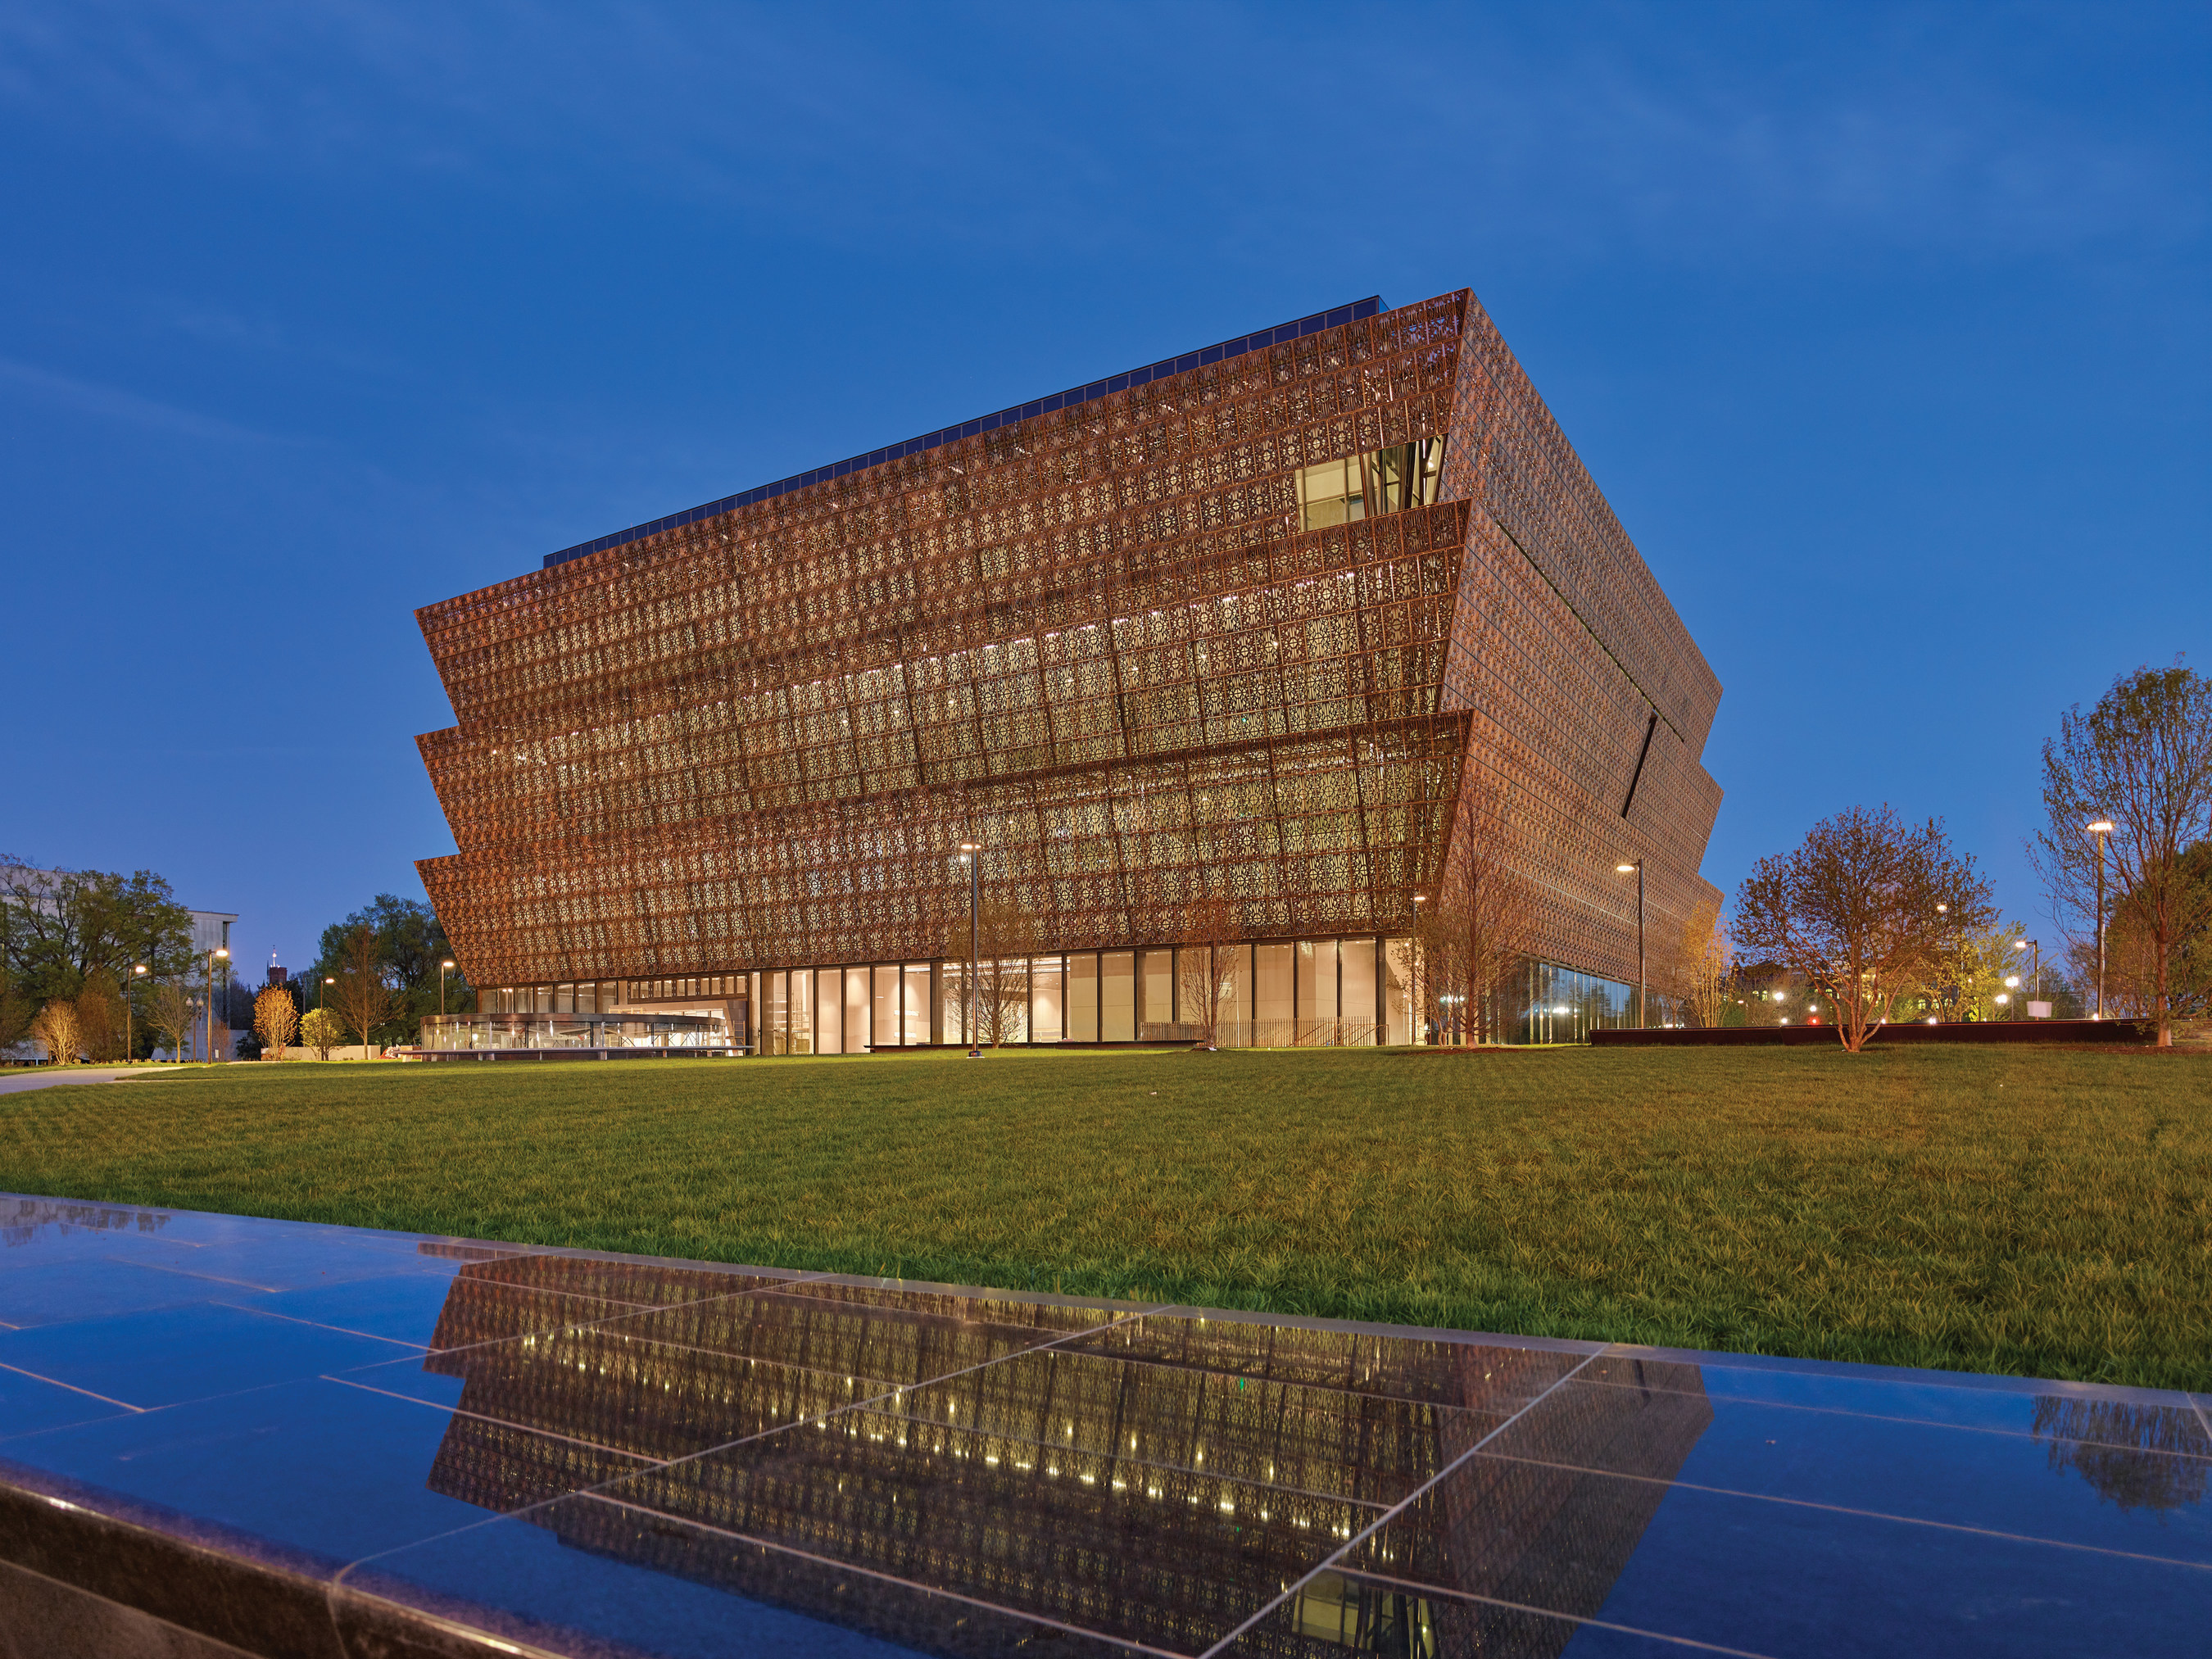 Lowe's donates $1 million to the Smithsonian's National Museum of African American History and Culture